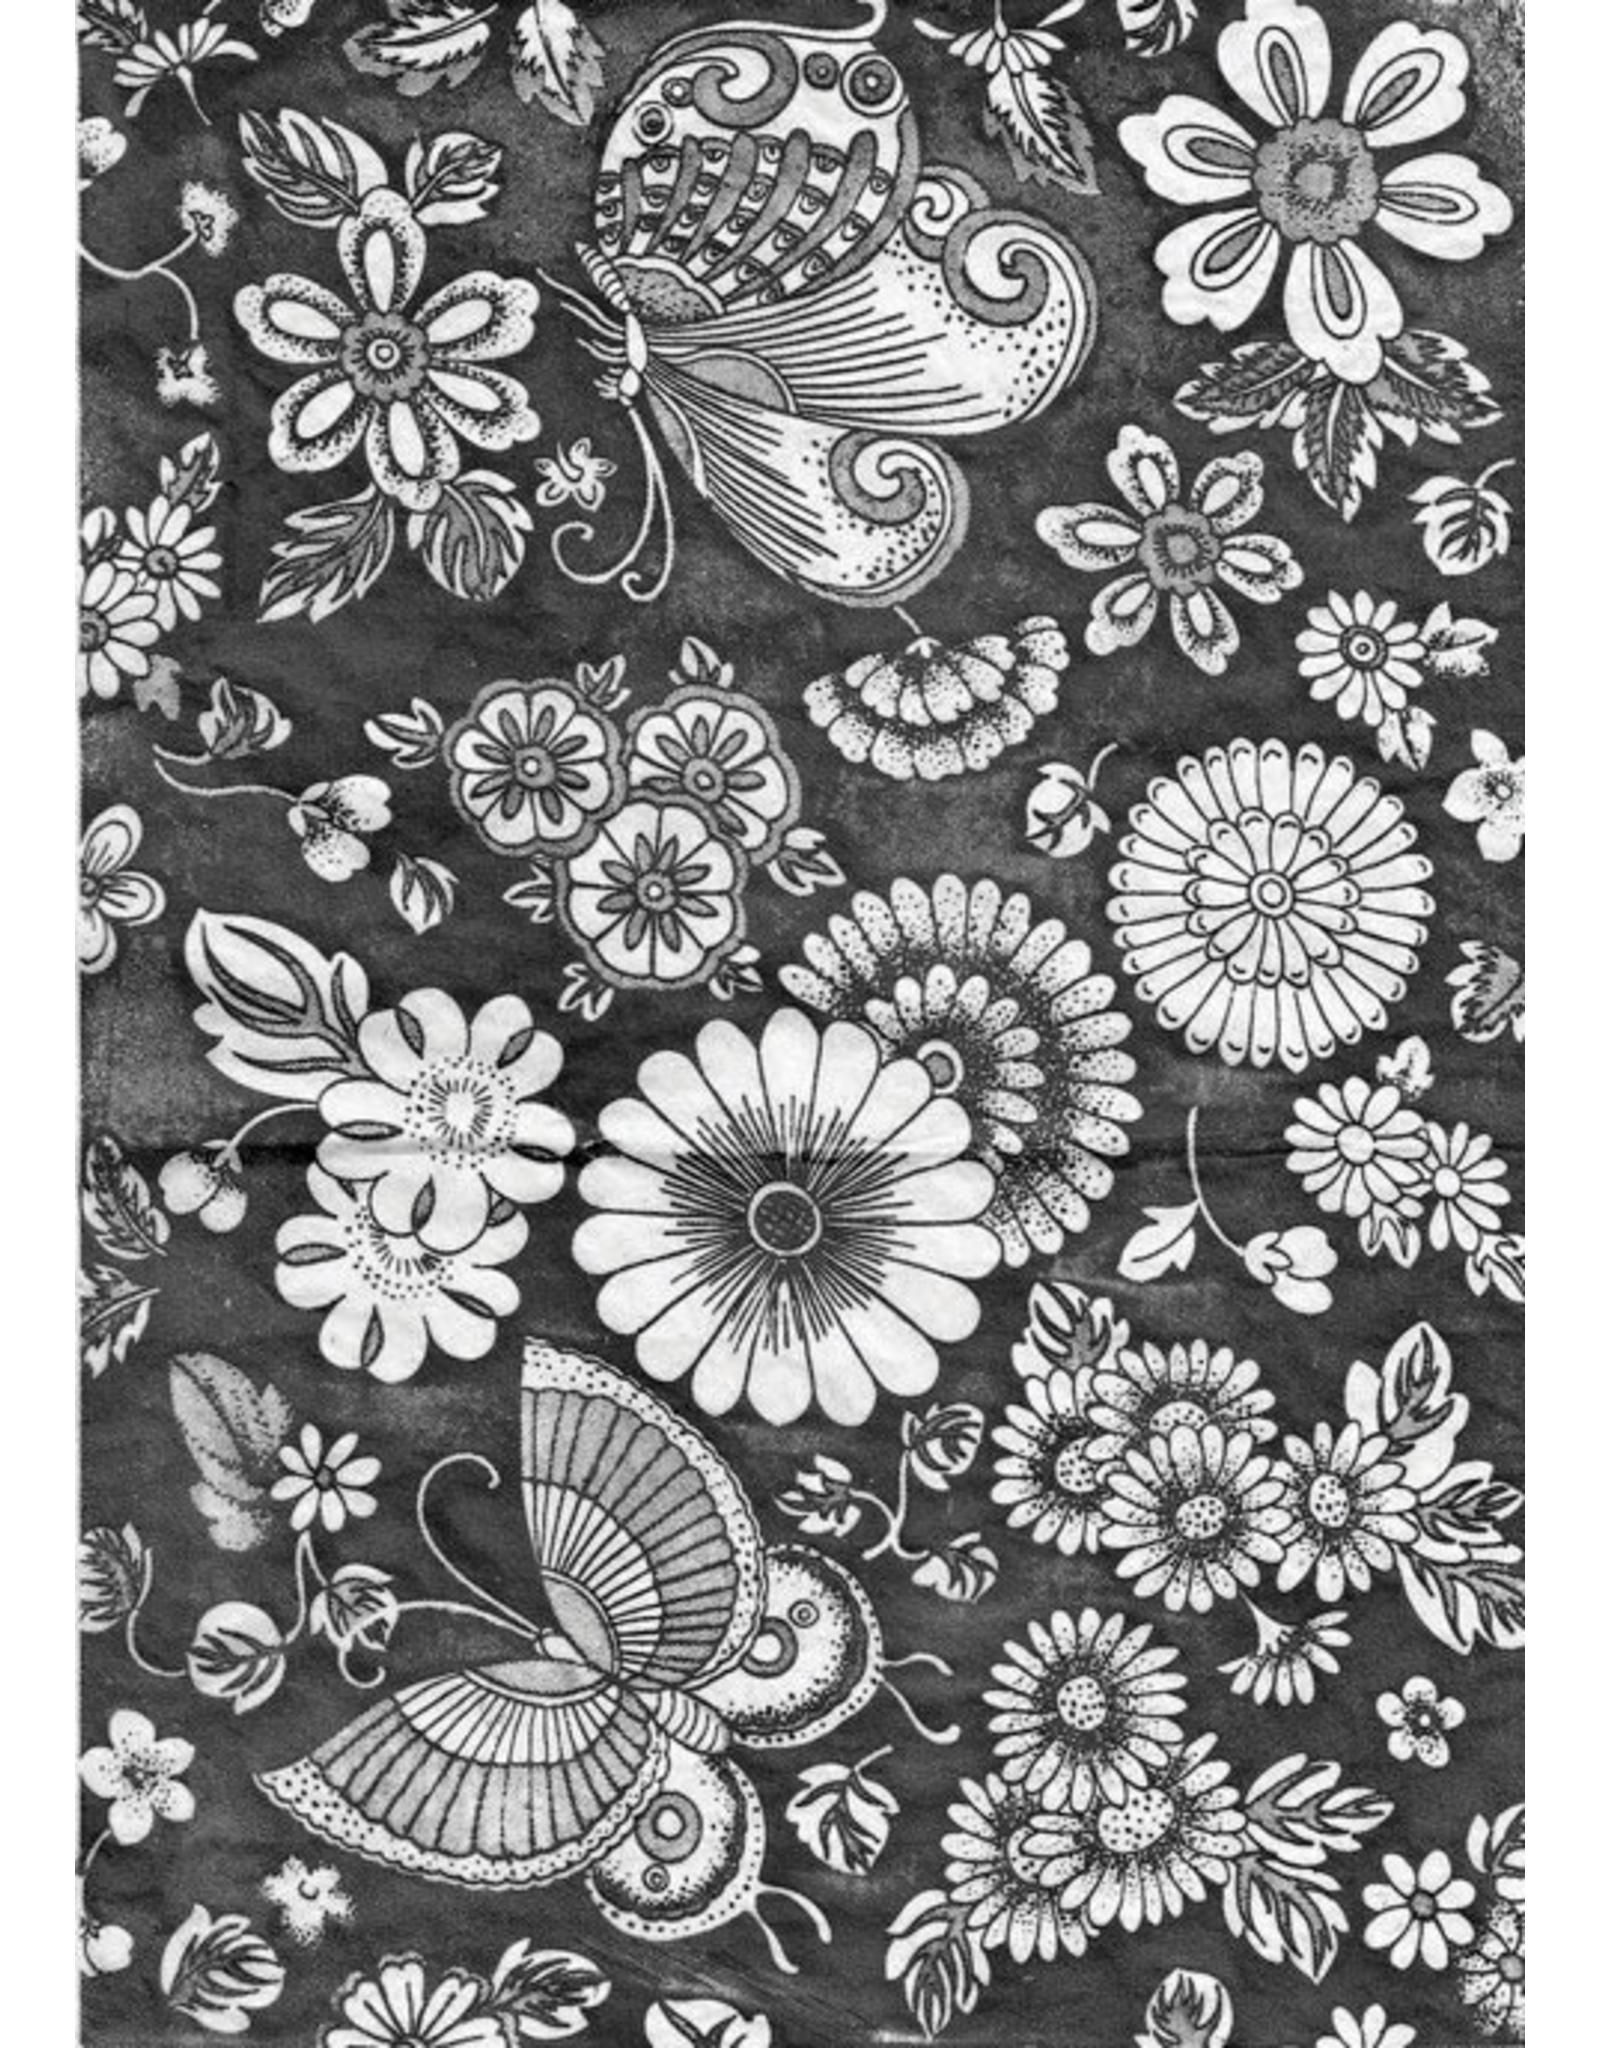 Sanbao Butterfly decal 3